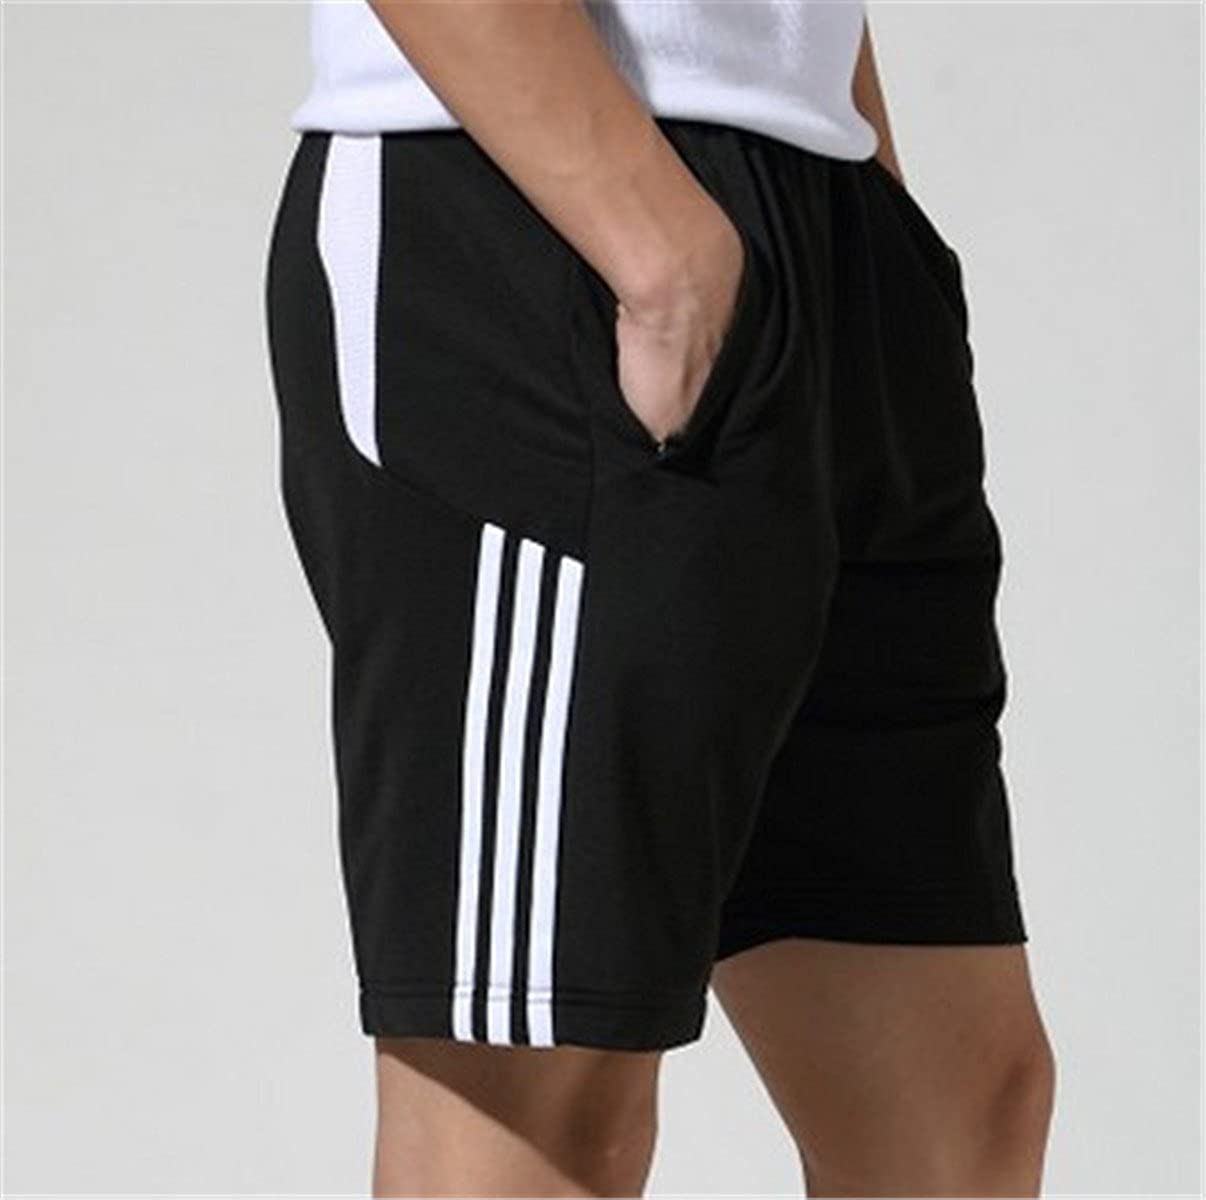 BININBOX Mens Shorts Waistband Stretchy Athletic Running Jogging with Pockets